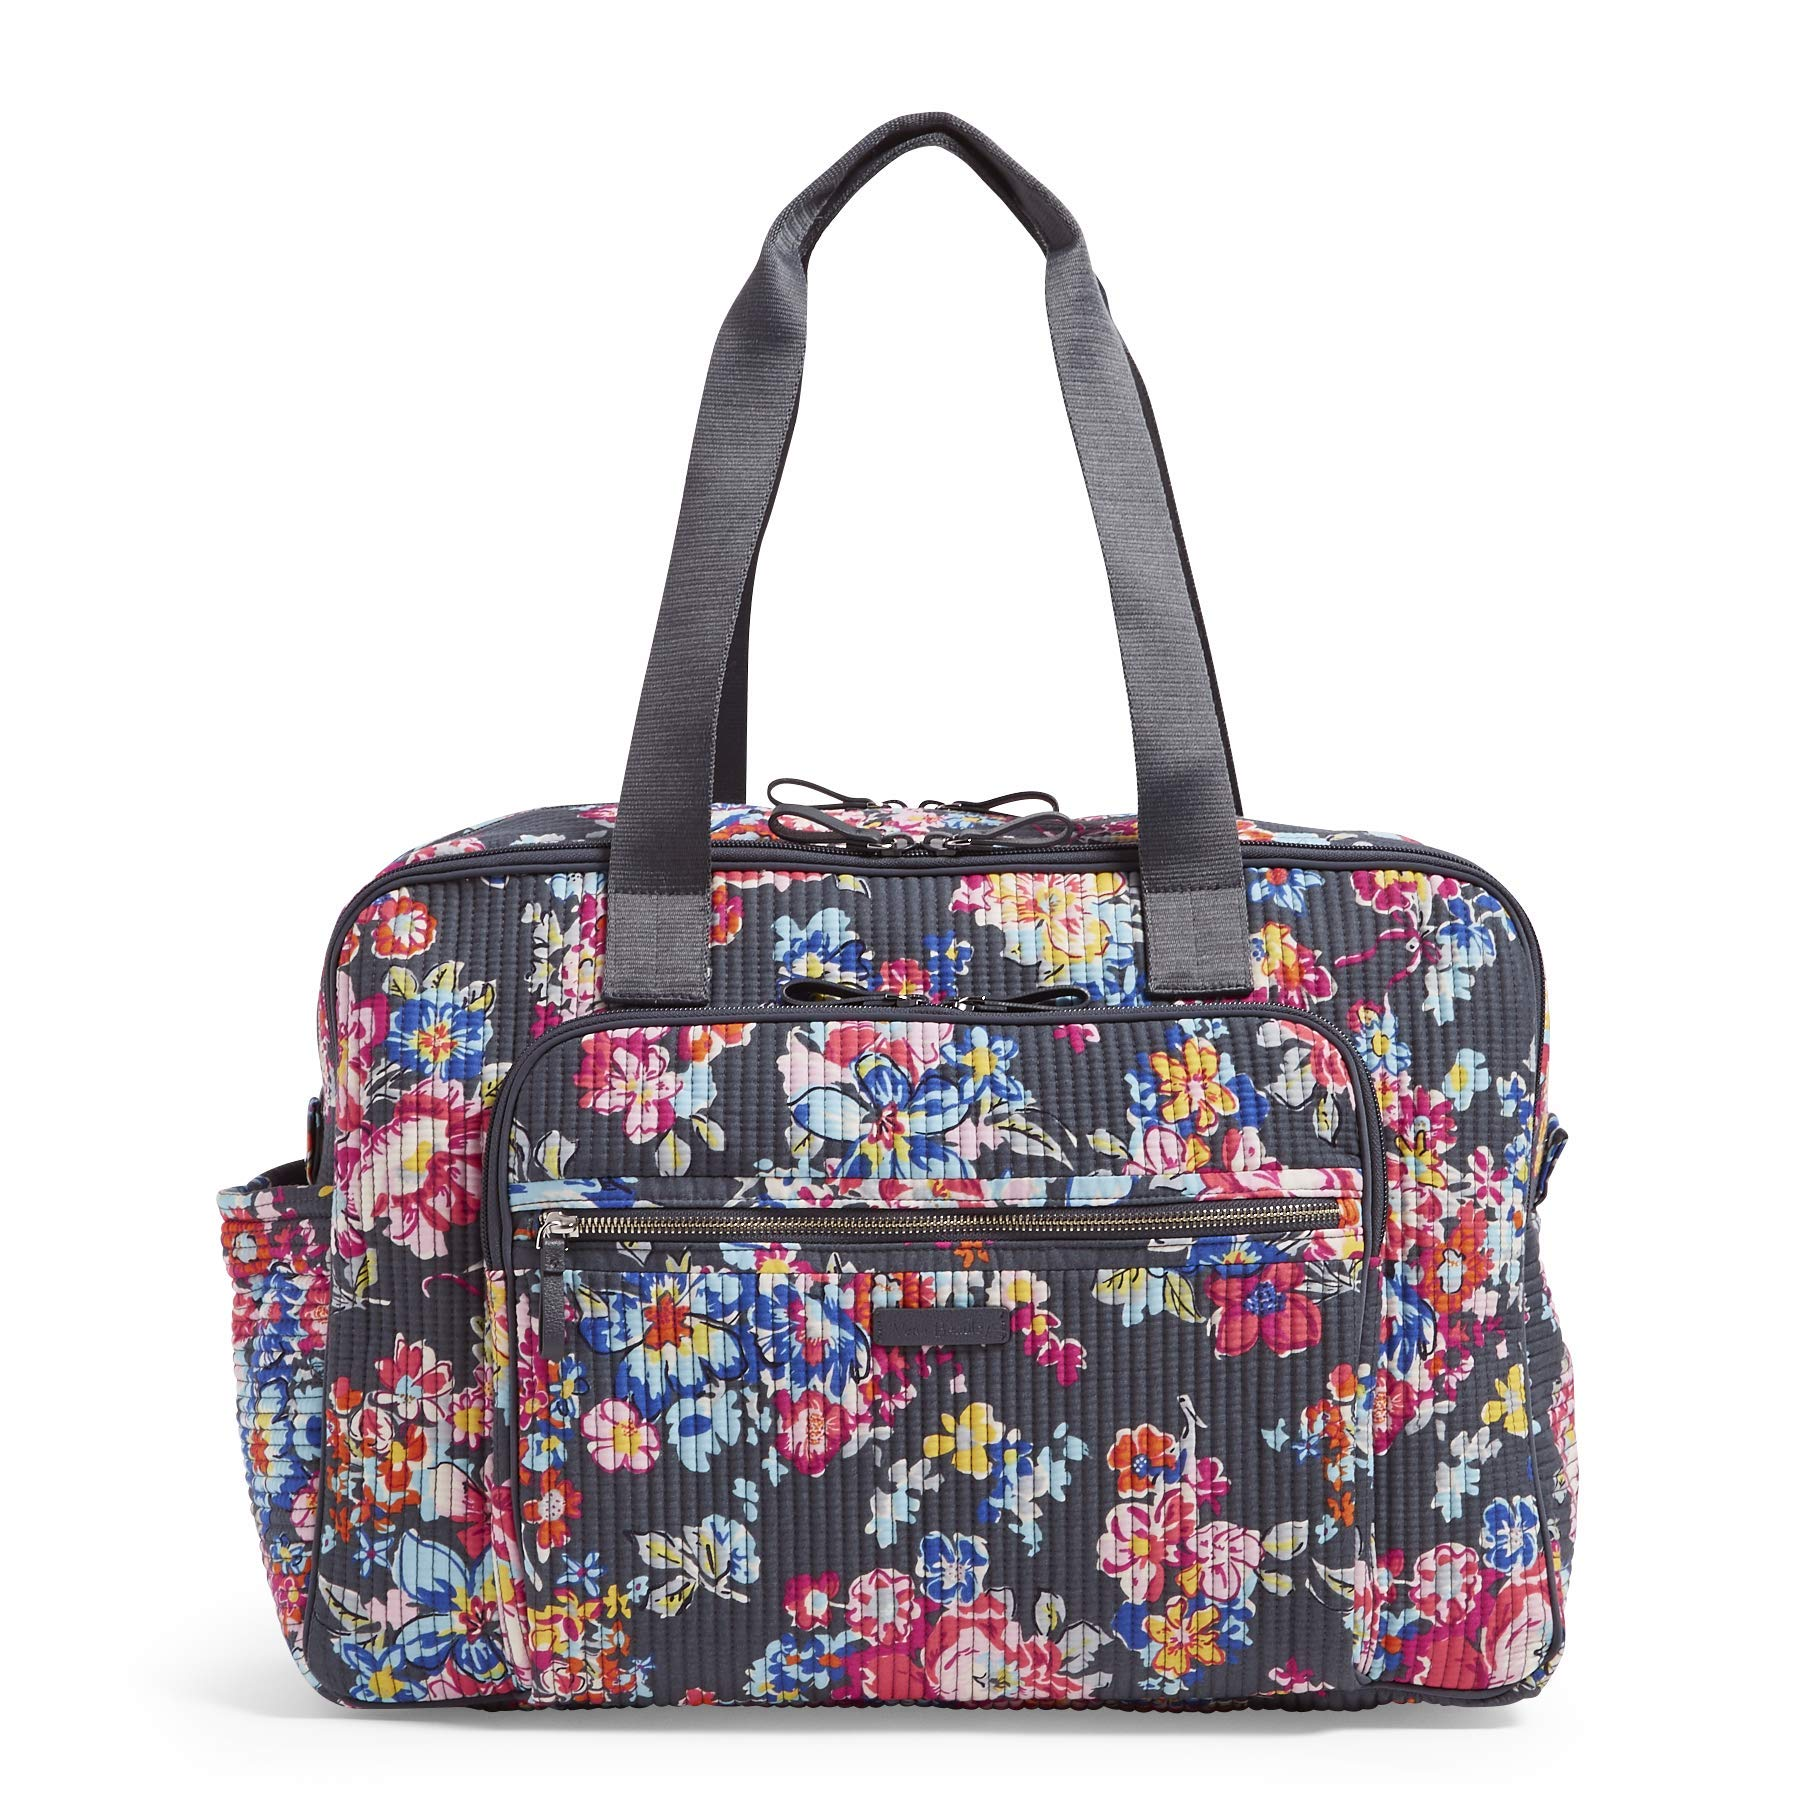 Vera Bradley Iconic Deluxe Weekender Travel Bag, Signature Cotton, Pretty Posies